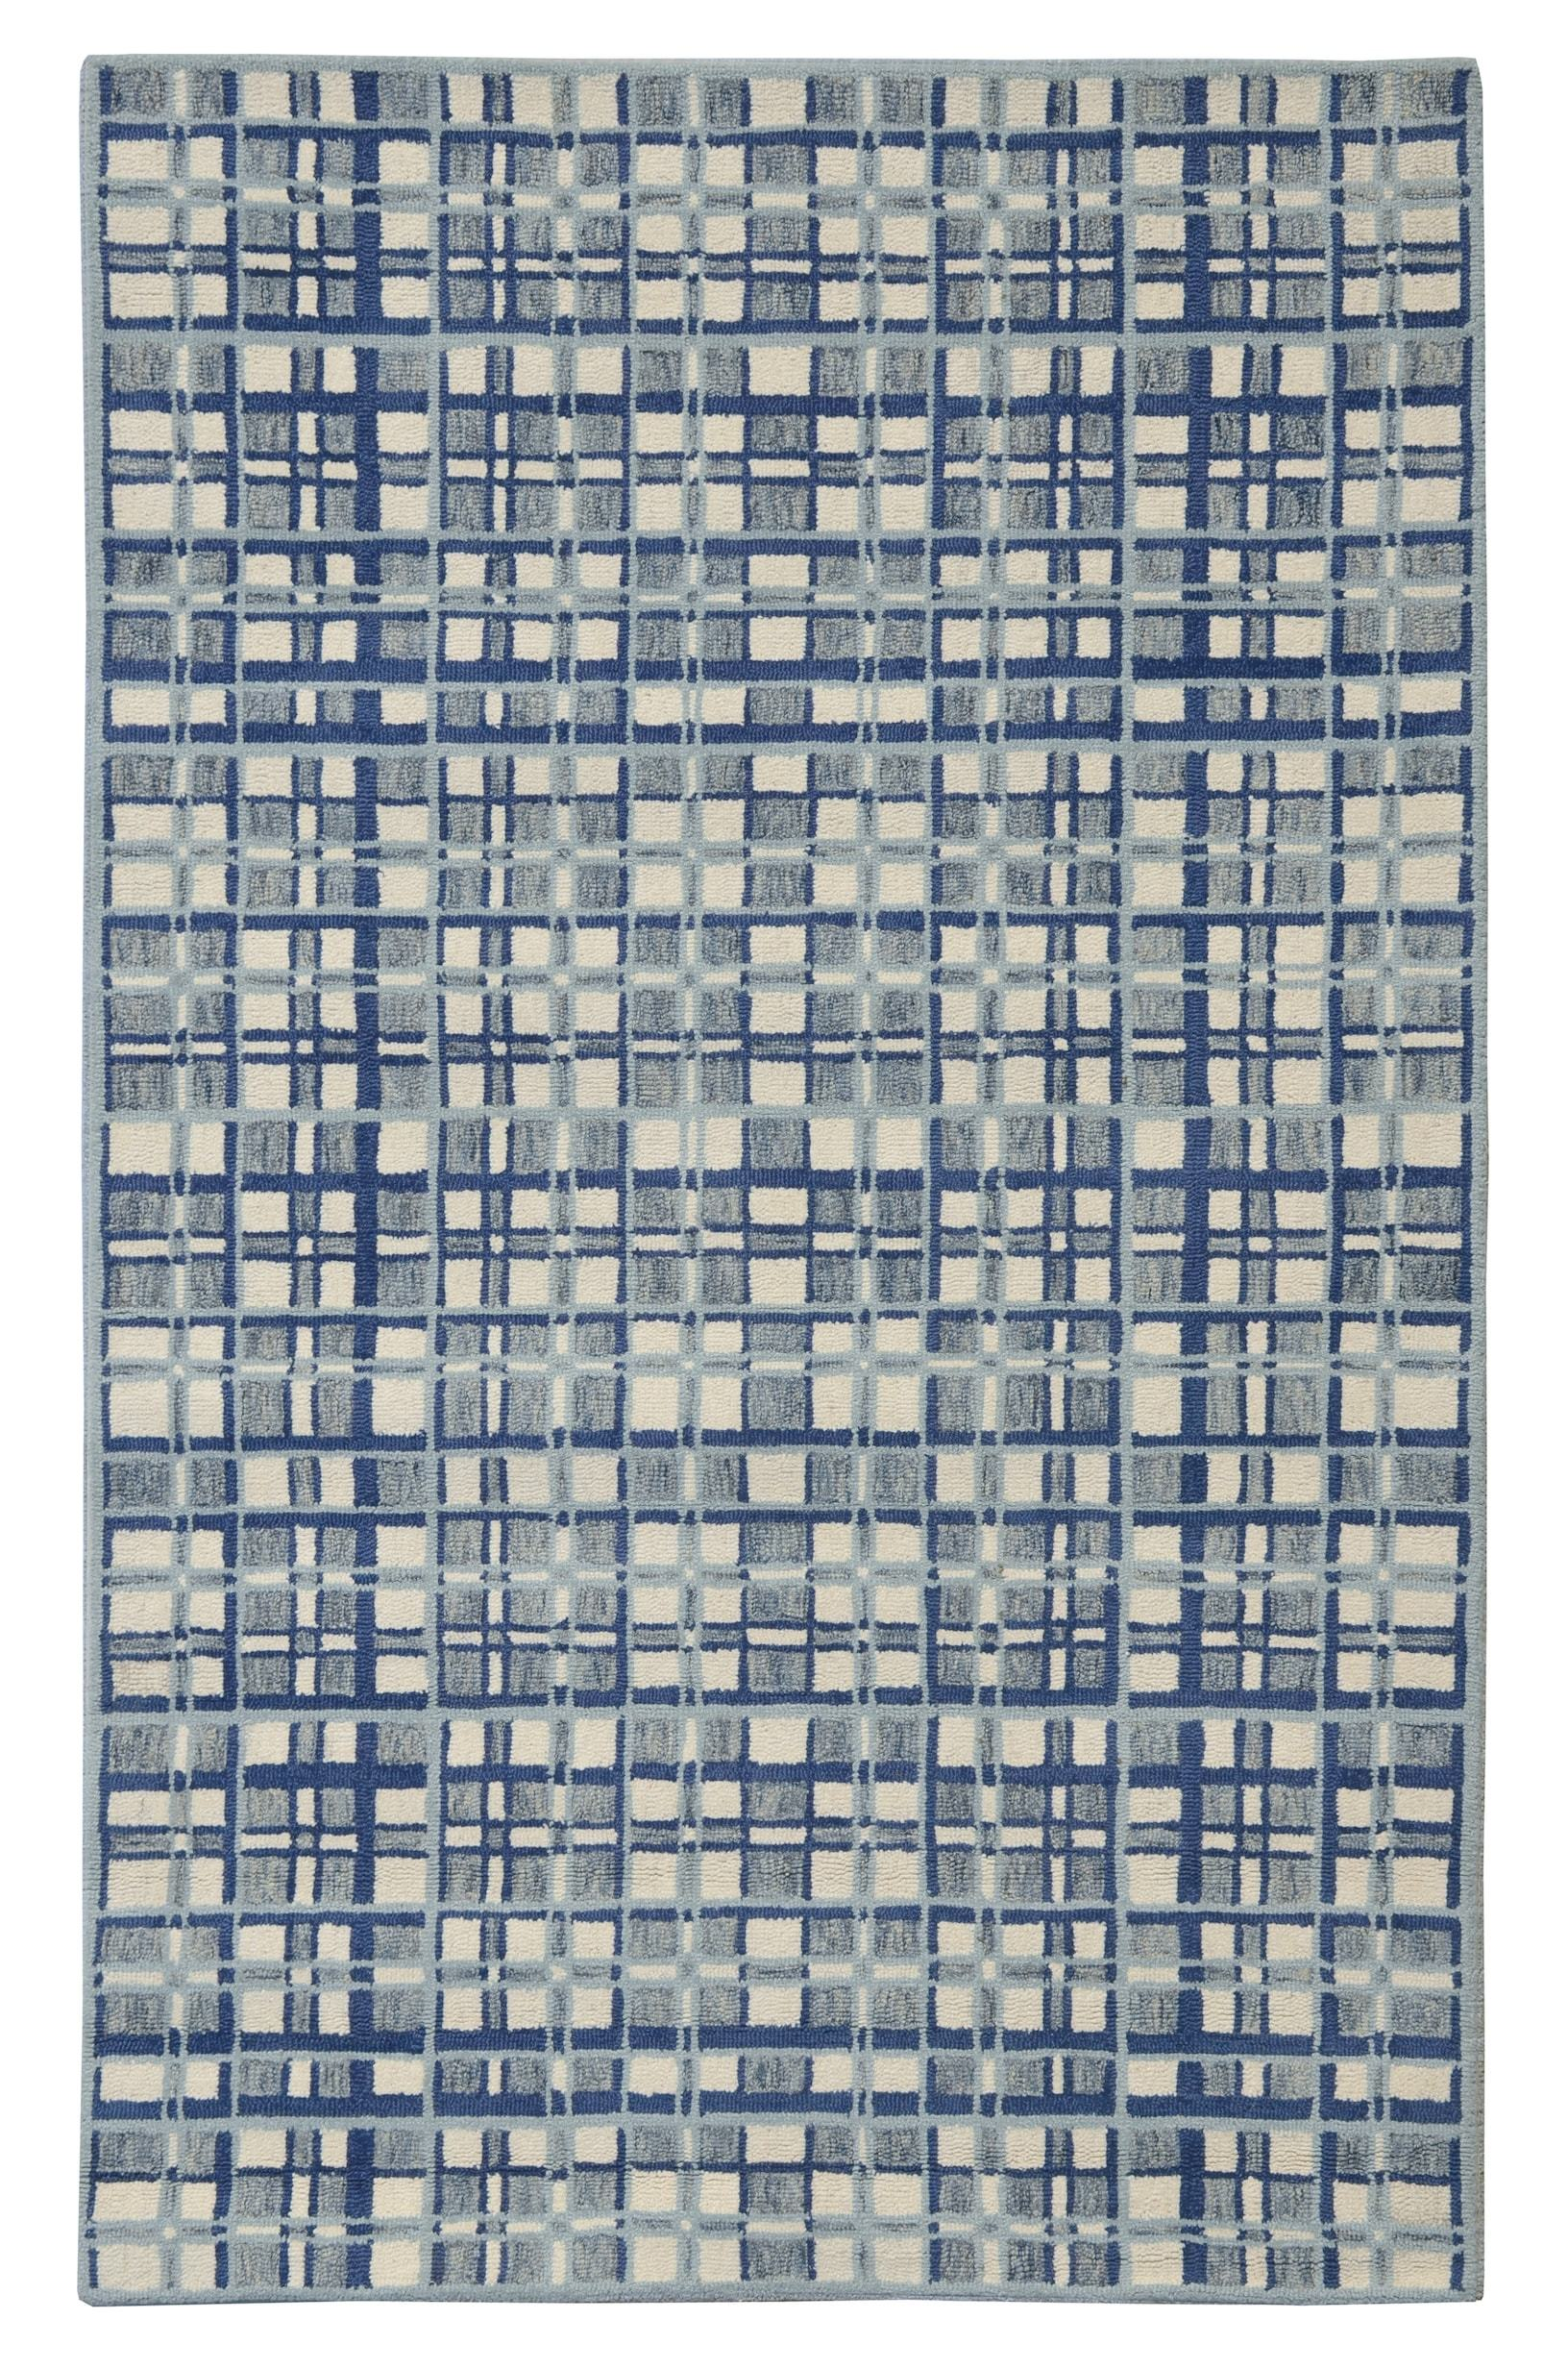 Motley Hand Tufted Rug by House of Rugs - Home Artisan